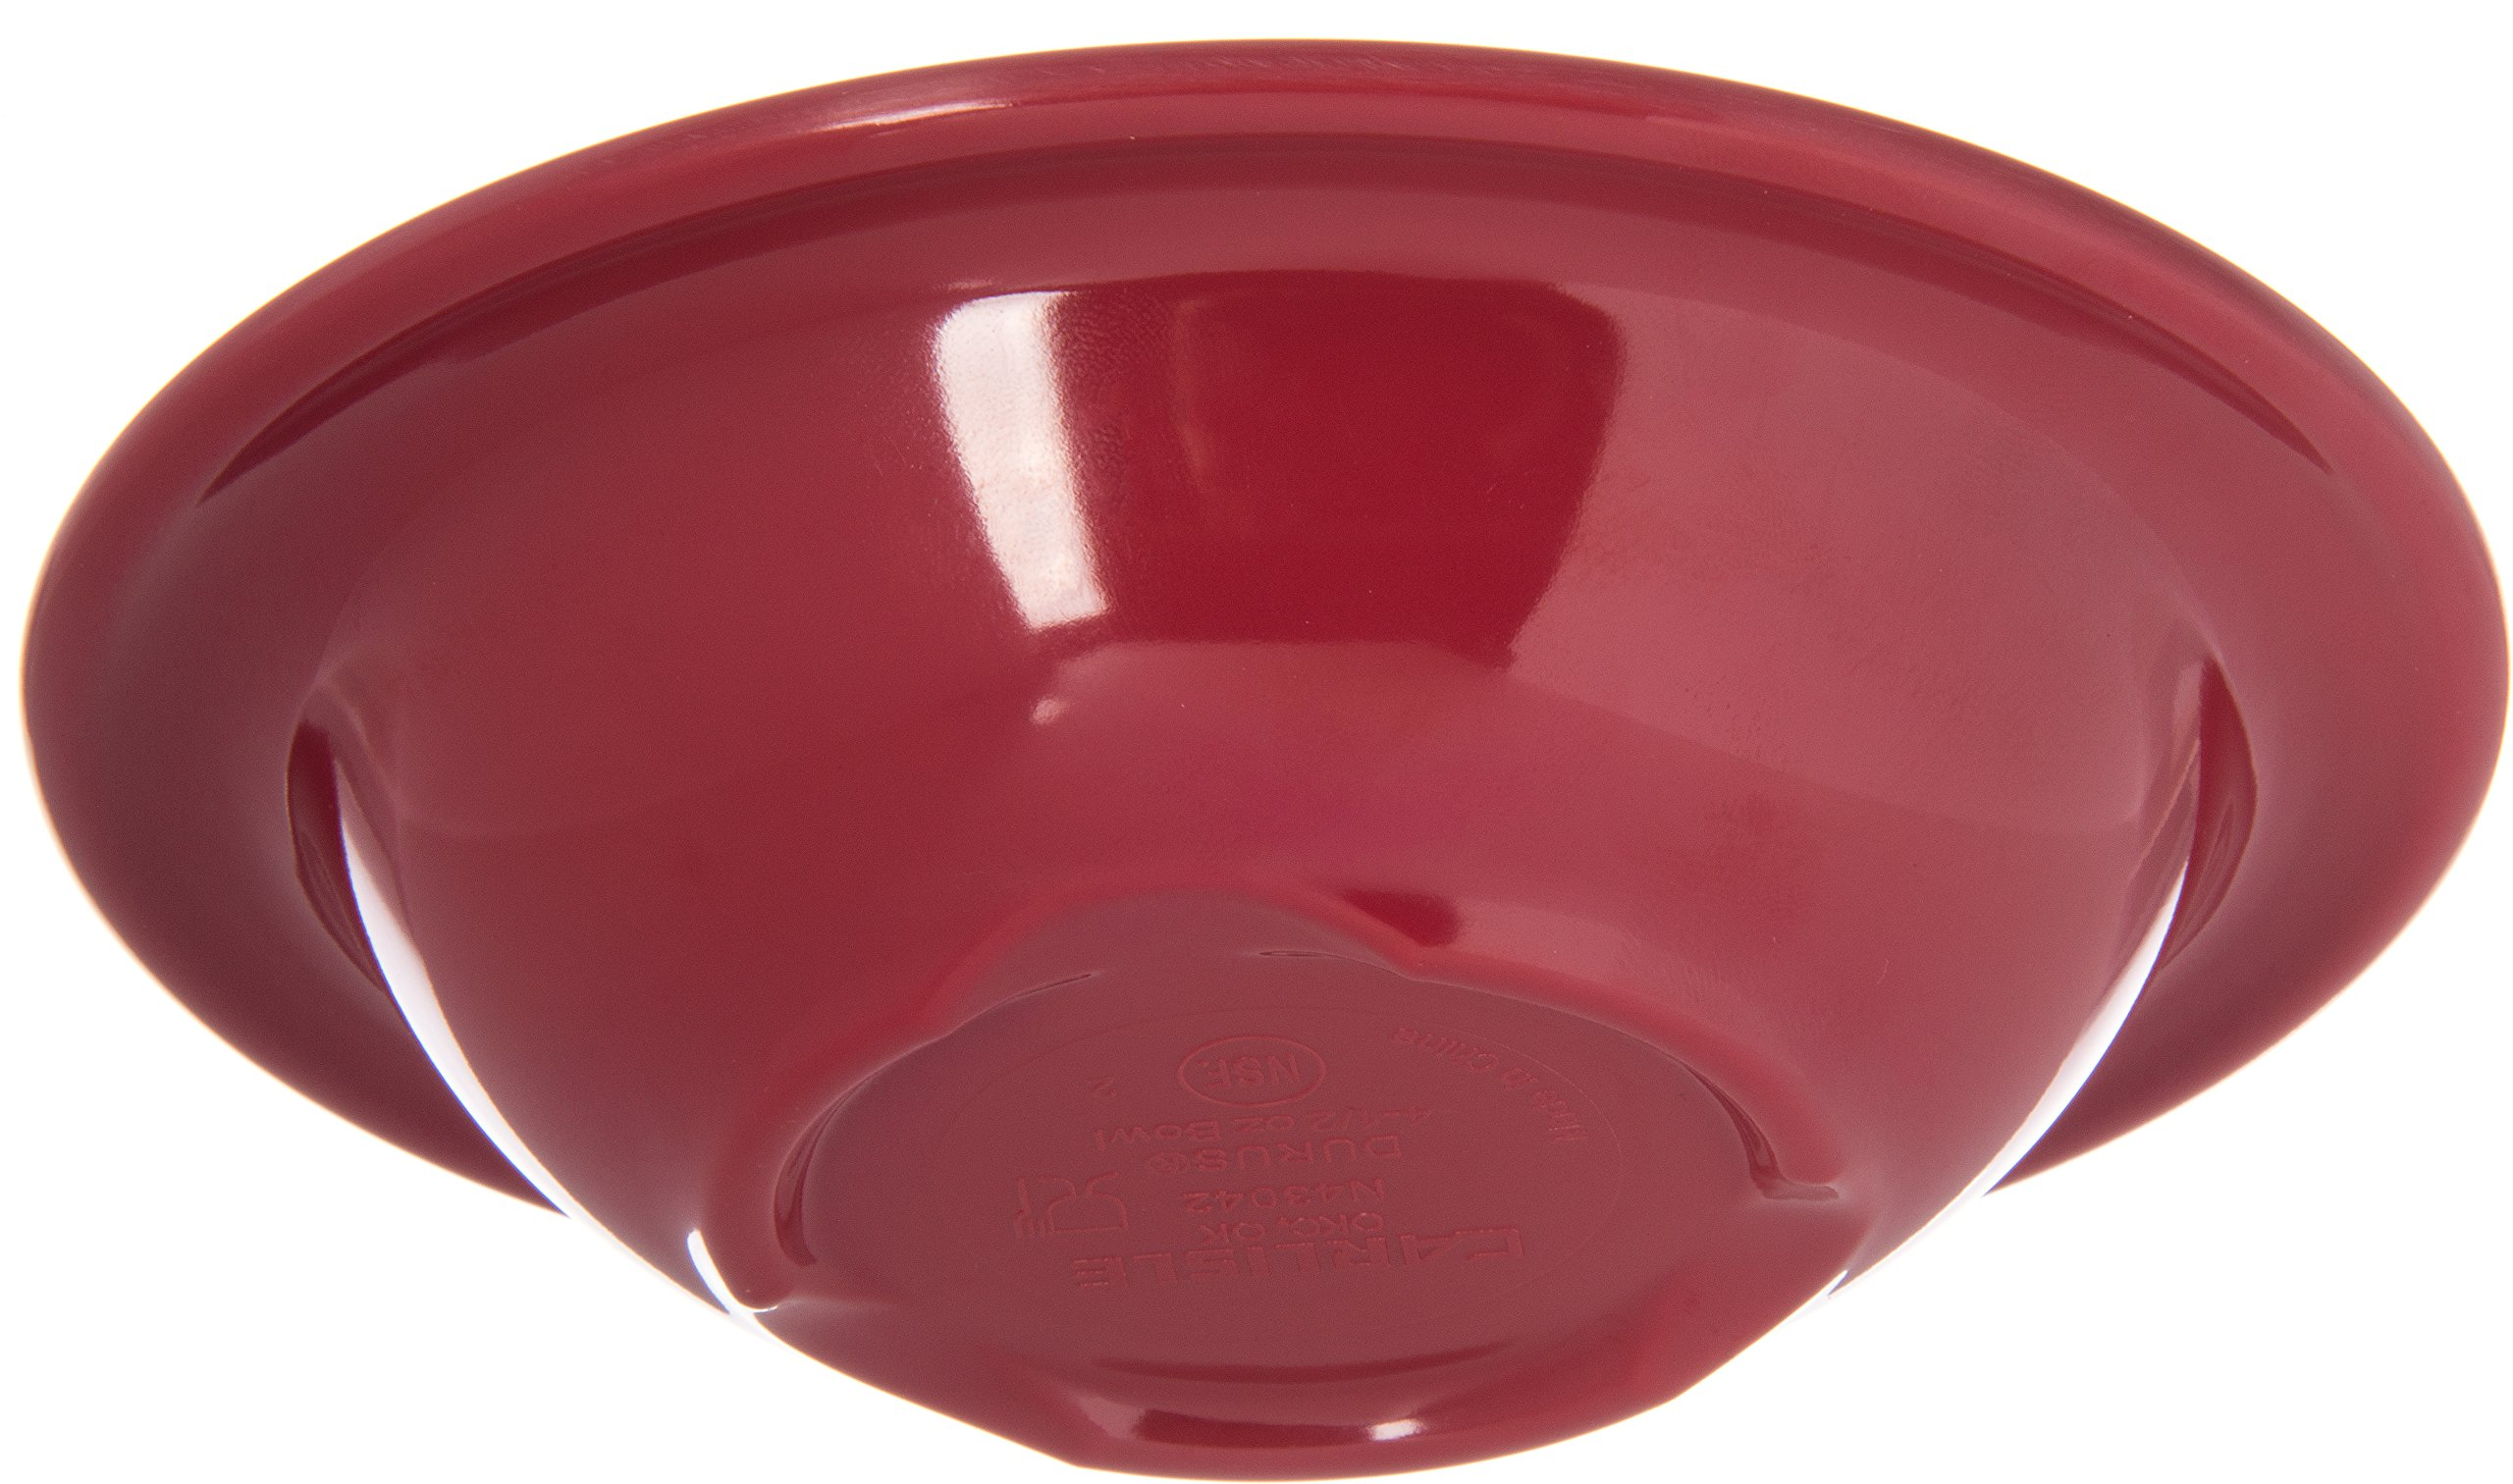 Carlisle 4304258 Durus Rimmed Melamine Fruit Bowl, 4 Oz., Roma Red (Pack of 48) by Carlisle (Image #5)